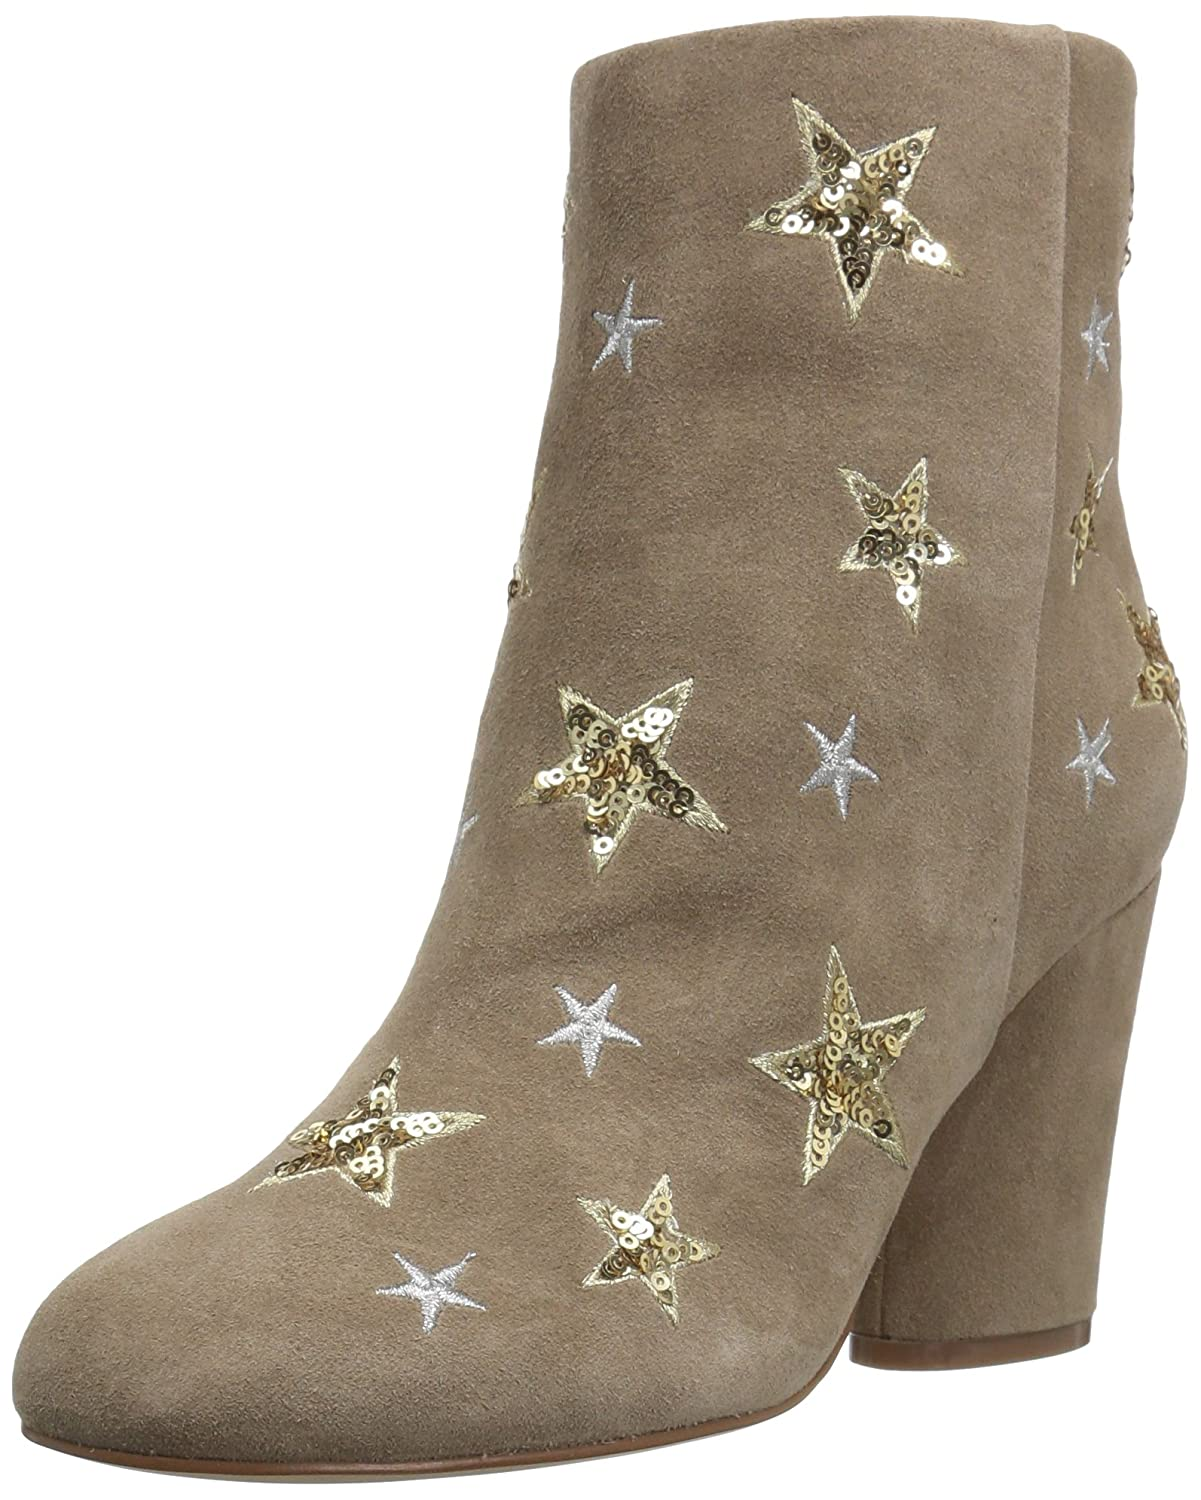 The Fix Women's Nash Star Sequin Oval Heel Ankle Bootie B01MYDNGUO 7.5 B(M) US|Mushroom